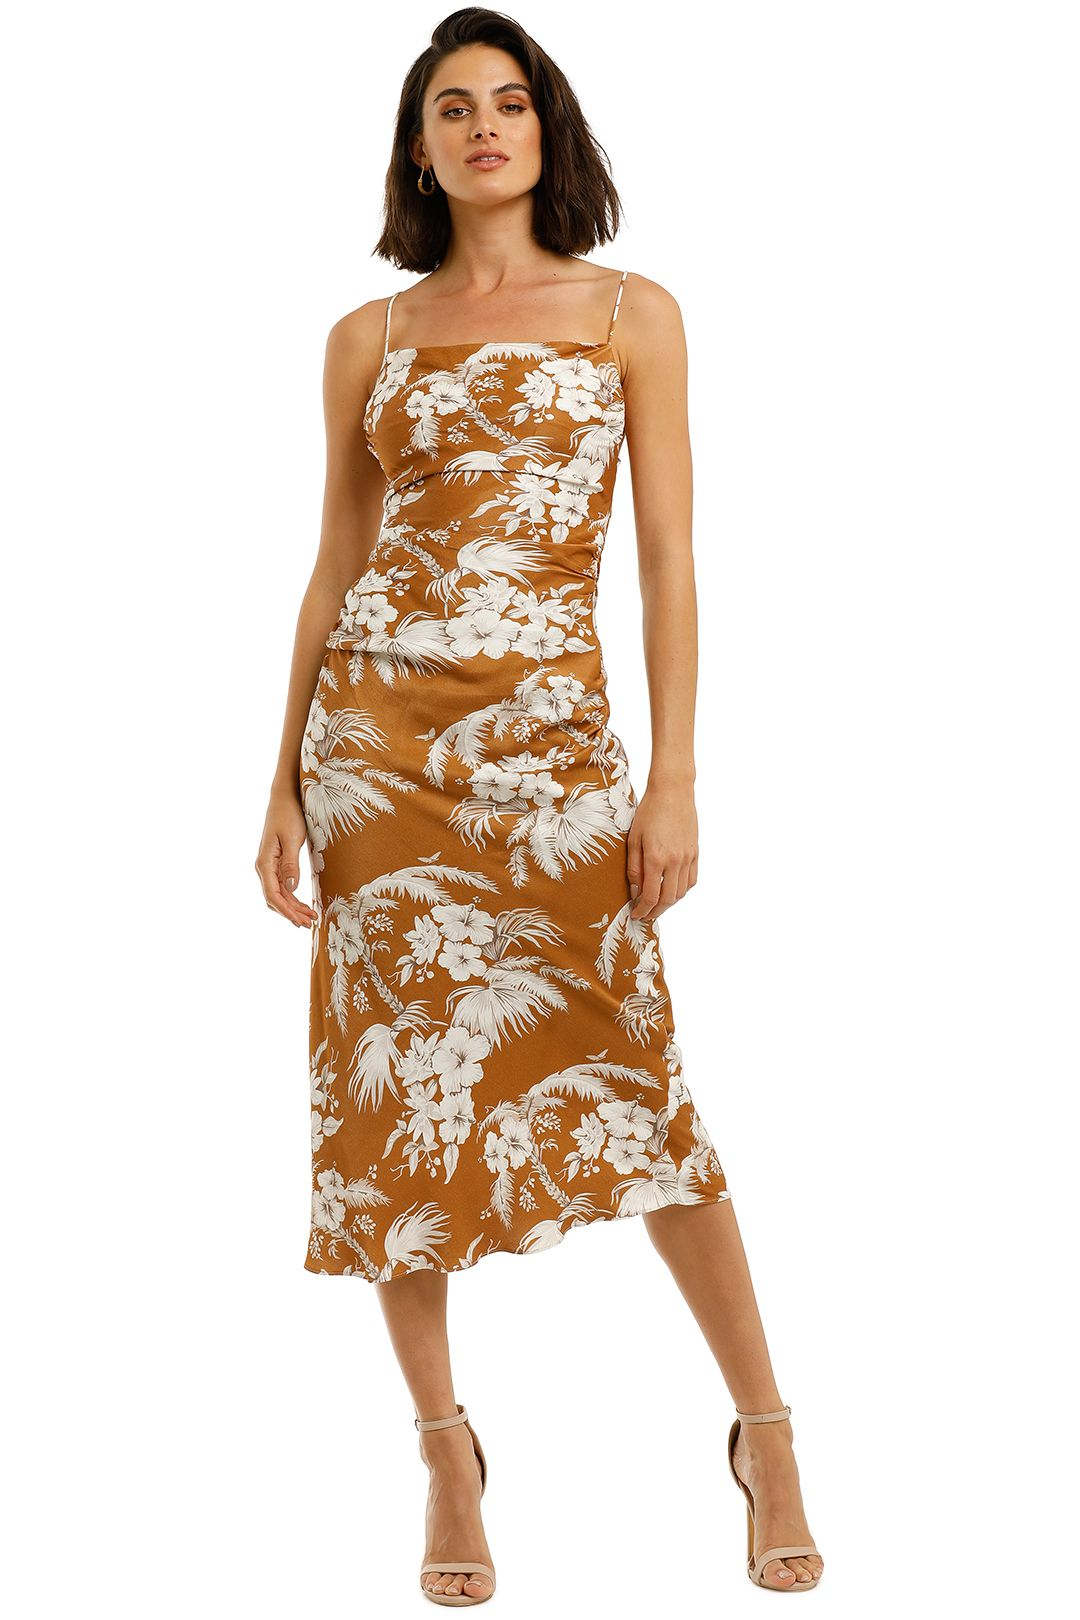 Shona-Joy-Westcott-Ruched-Backless-Slip-Dress-Front